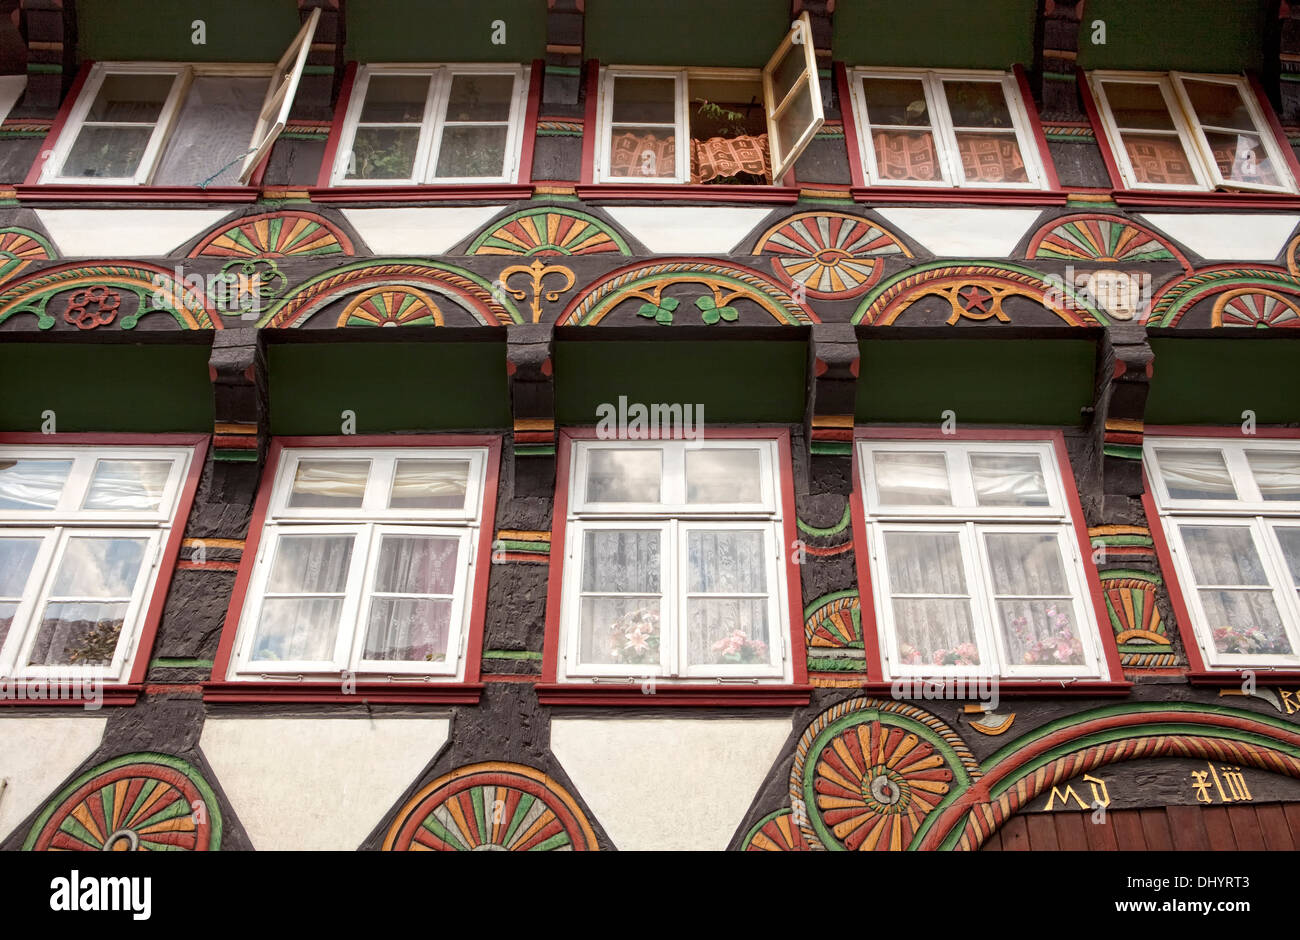 Half-timbered houses in the market square, Einbeck, Lower Saxony, Germany, Europe, - Stock Image